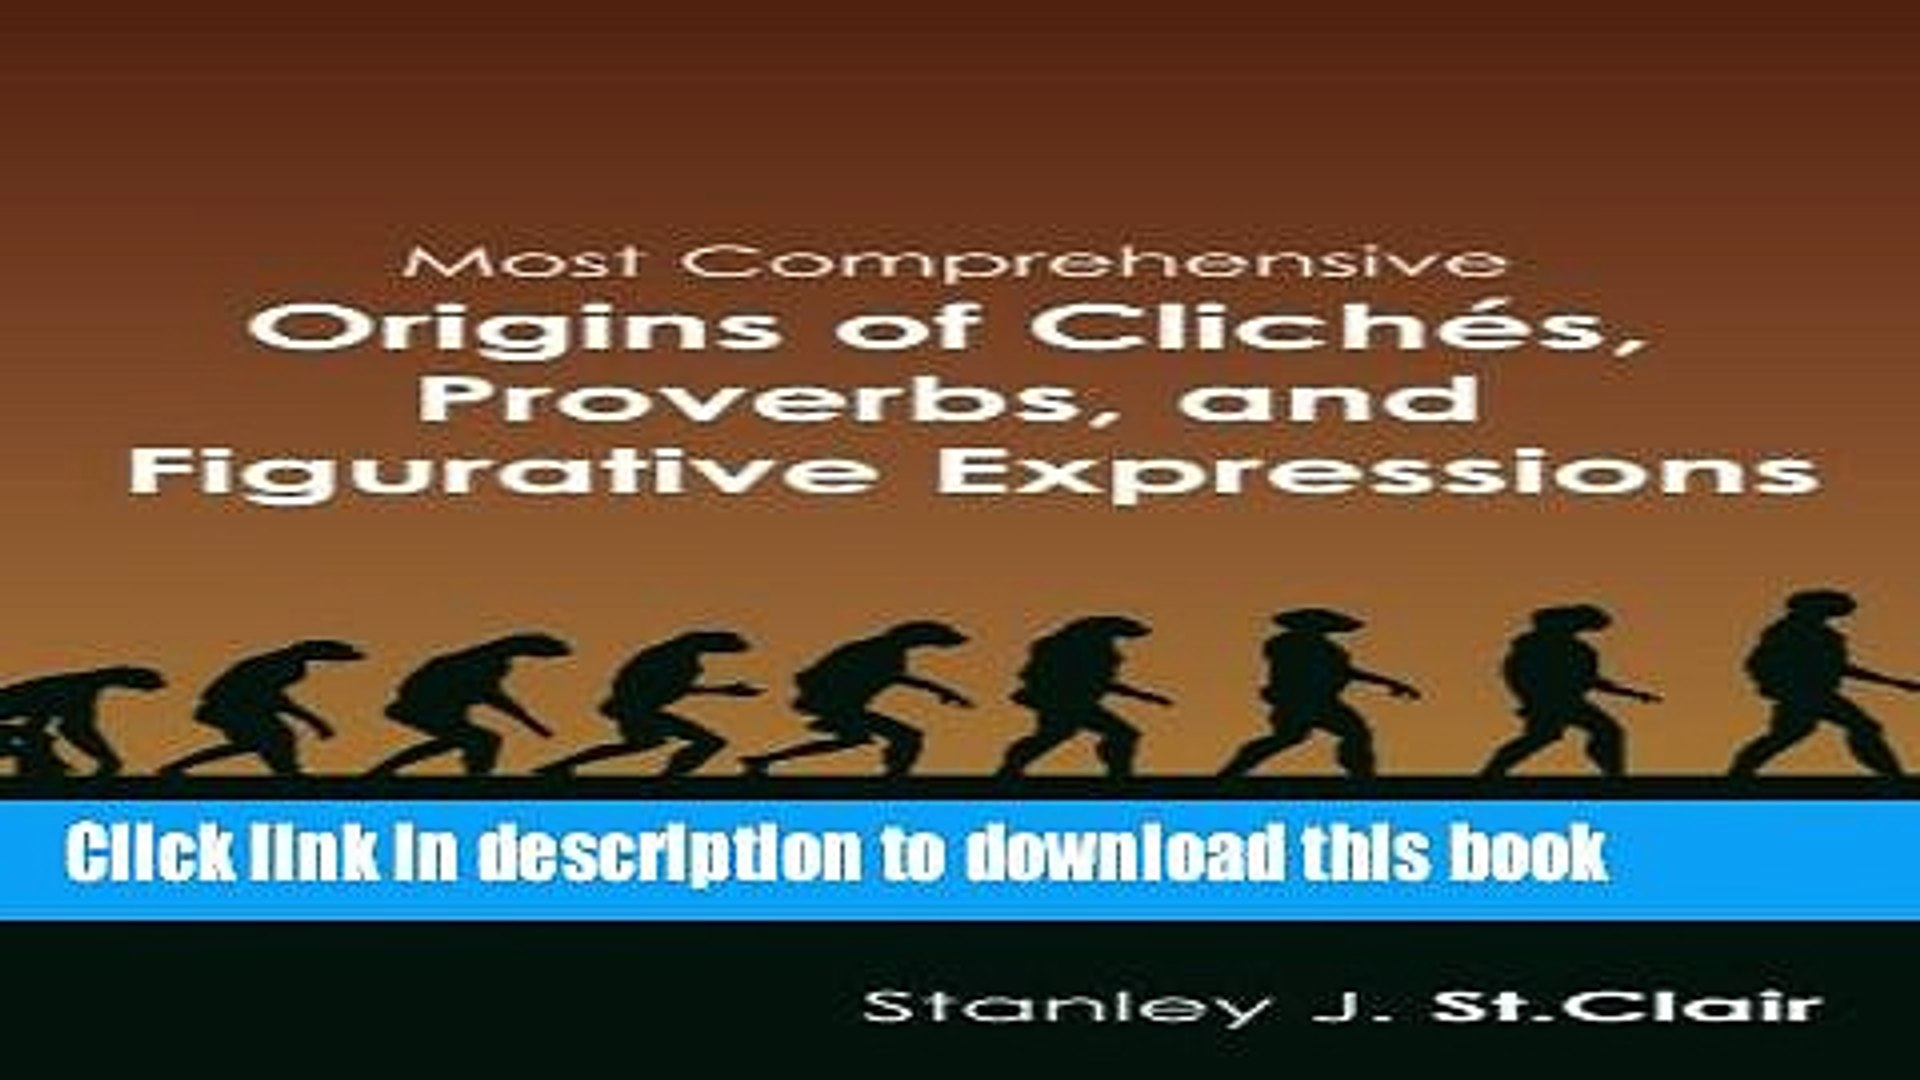 Most Comprehensive Origins of Cliches Proverbs and Figurative Expressions